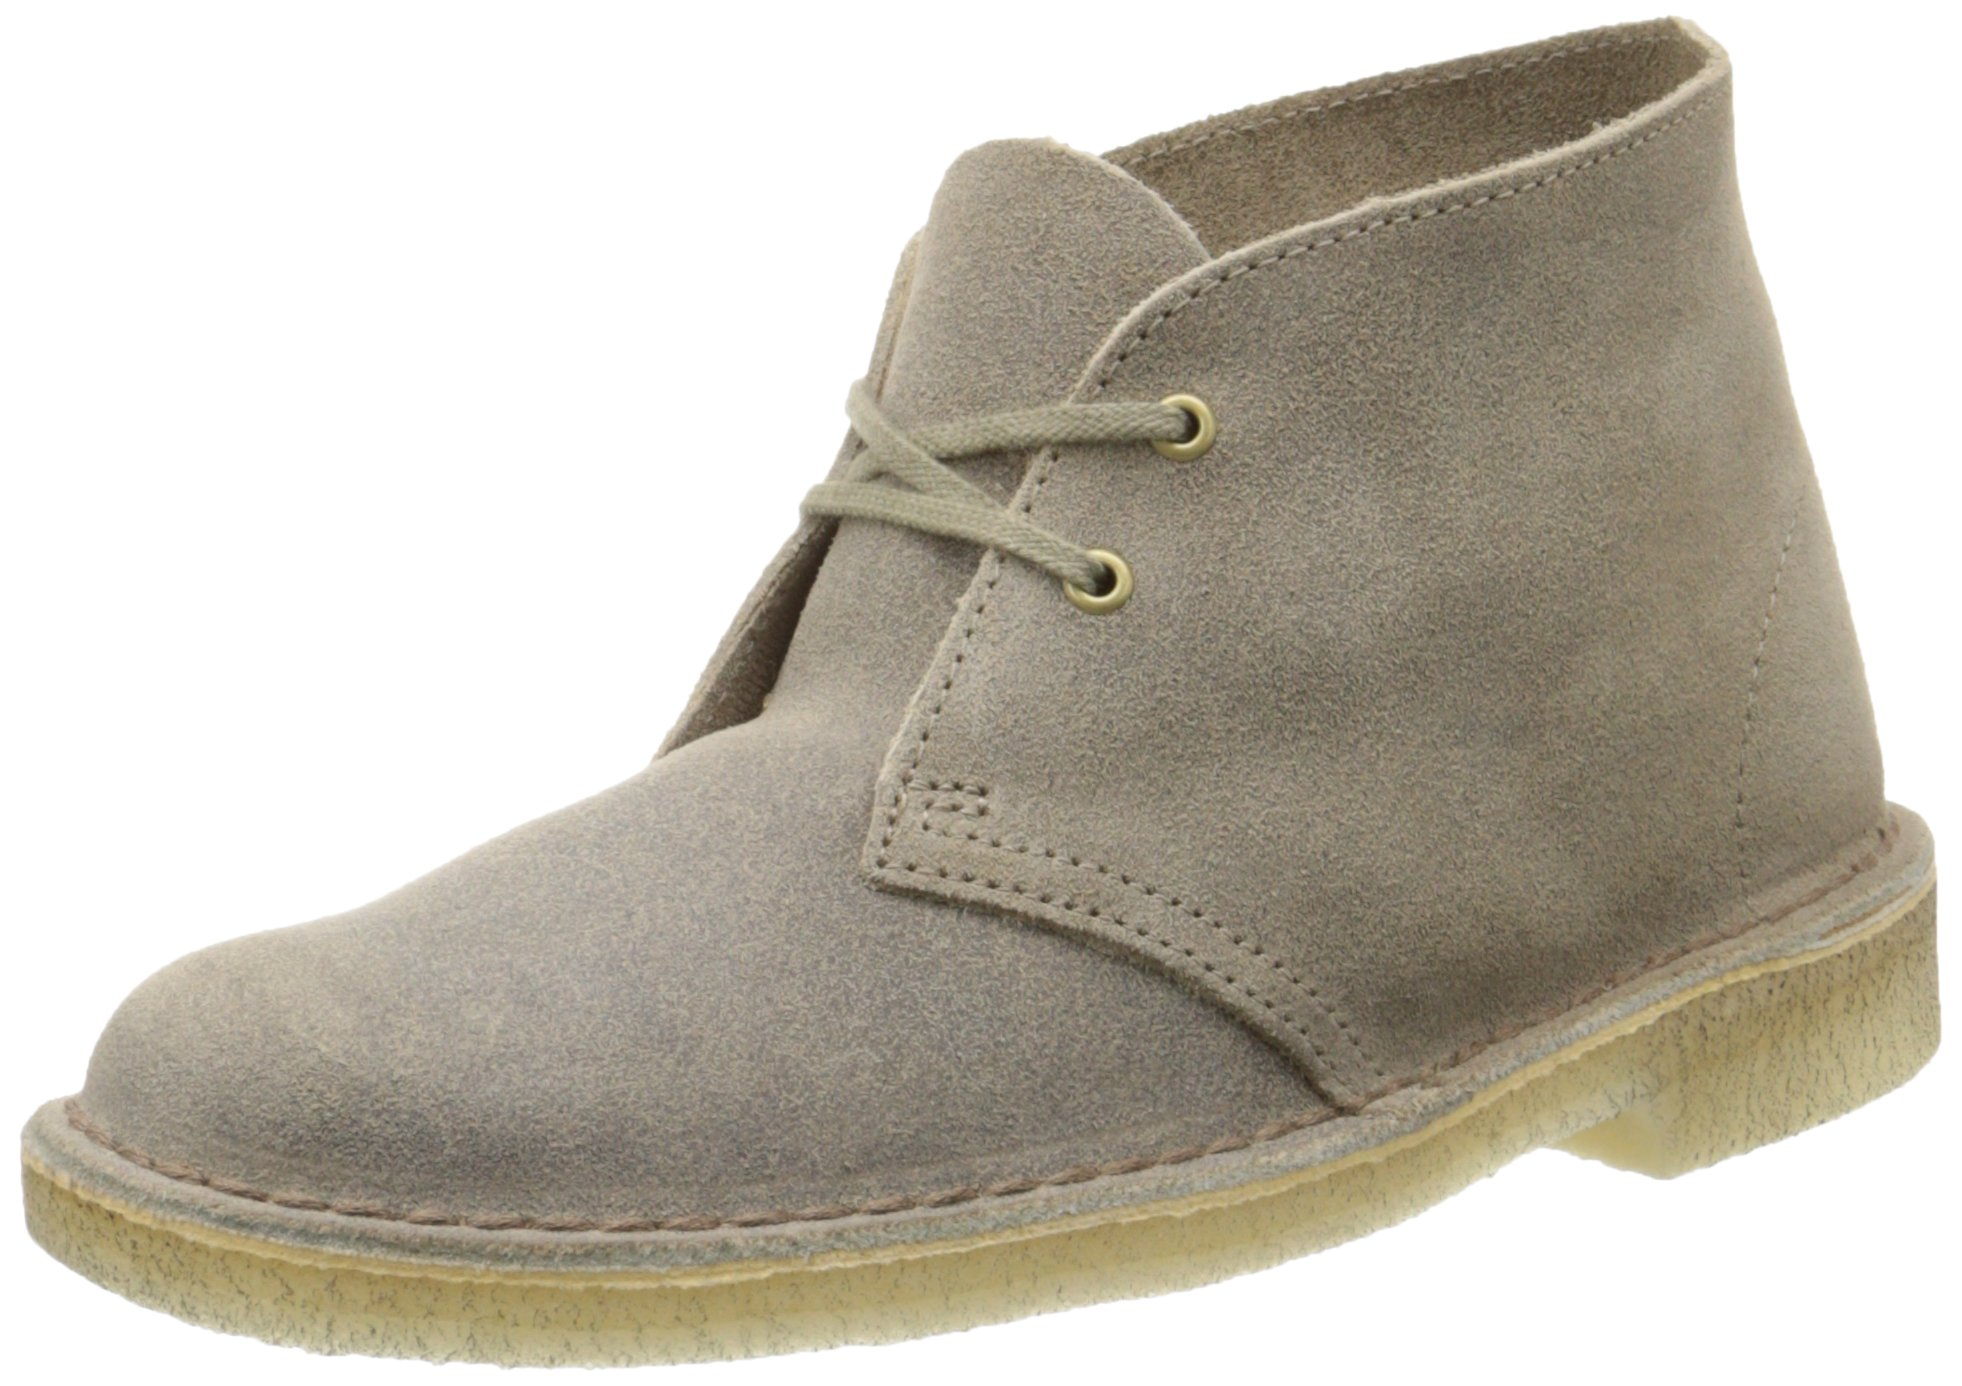 Clarks Originals Women's Desert Lace-Up Boot,Taupe,7 M US